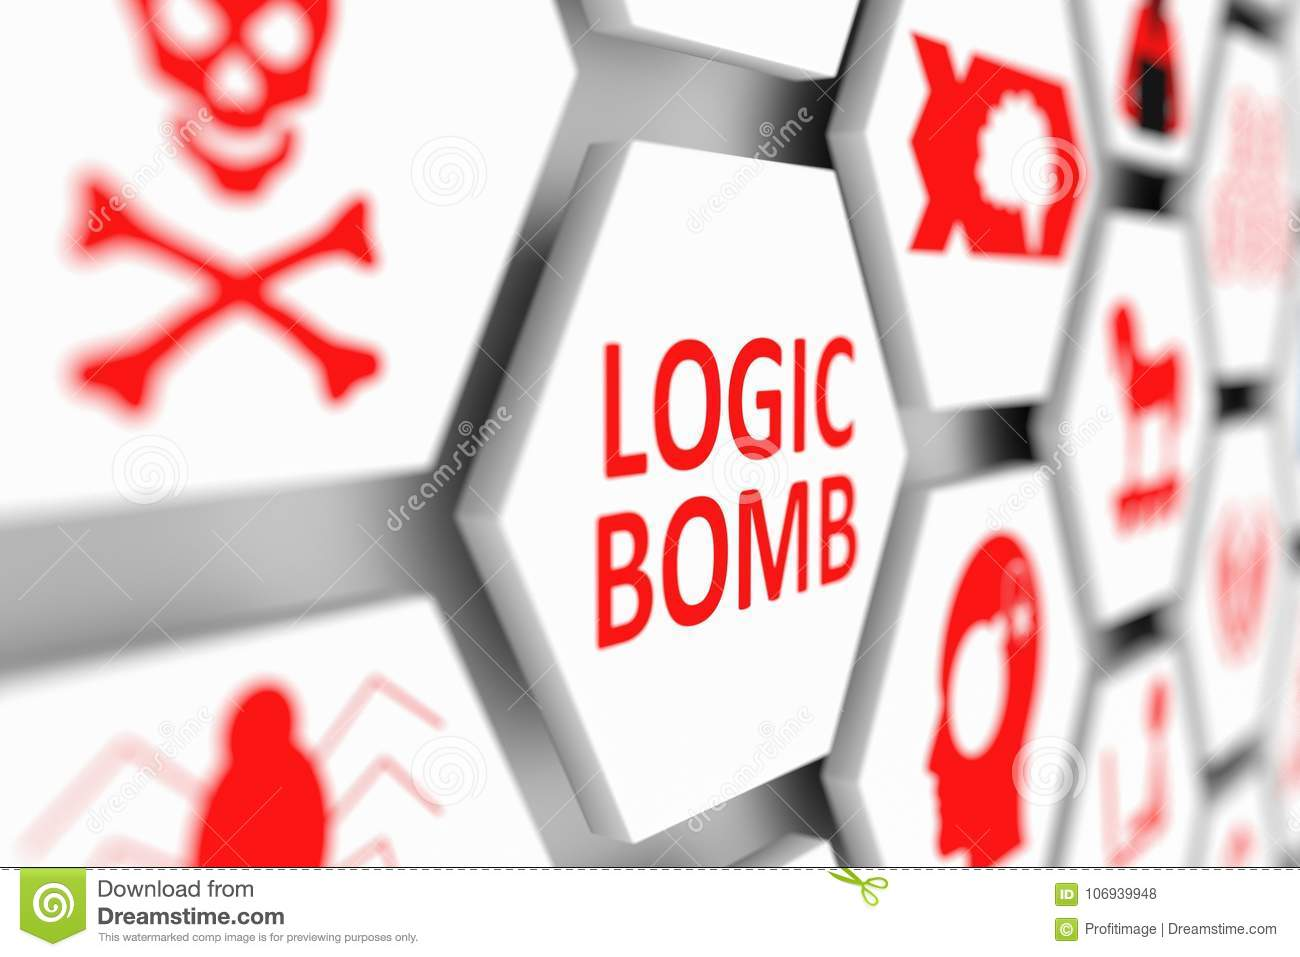 how to make a logic bomb